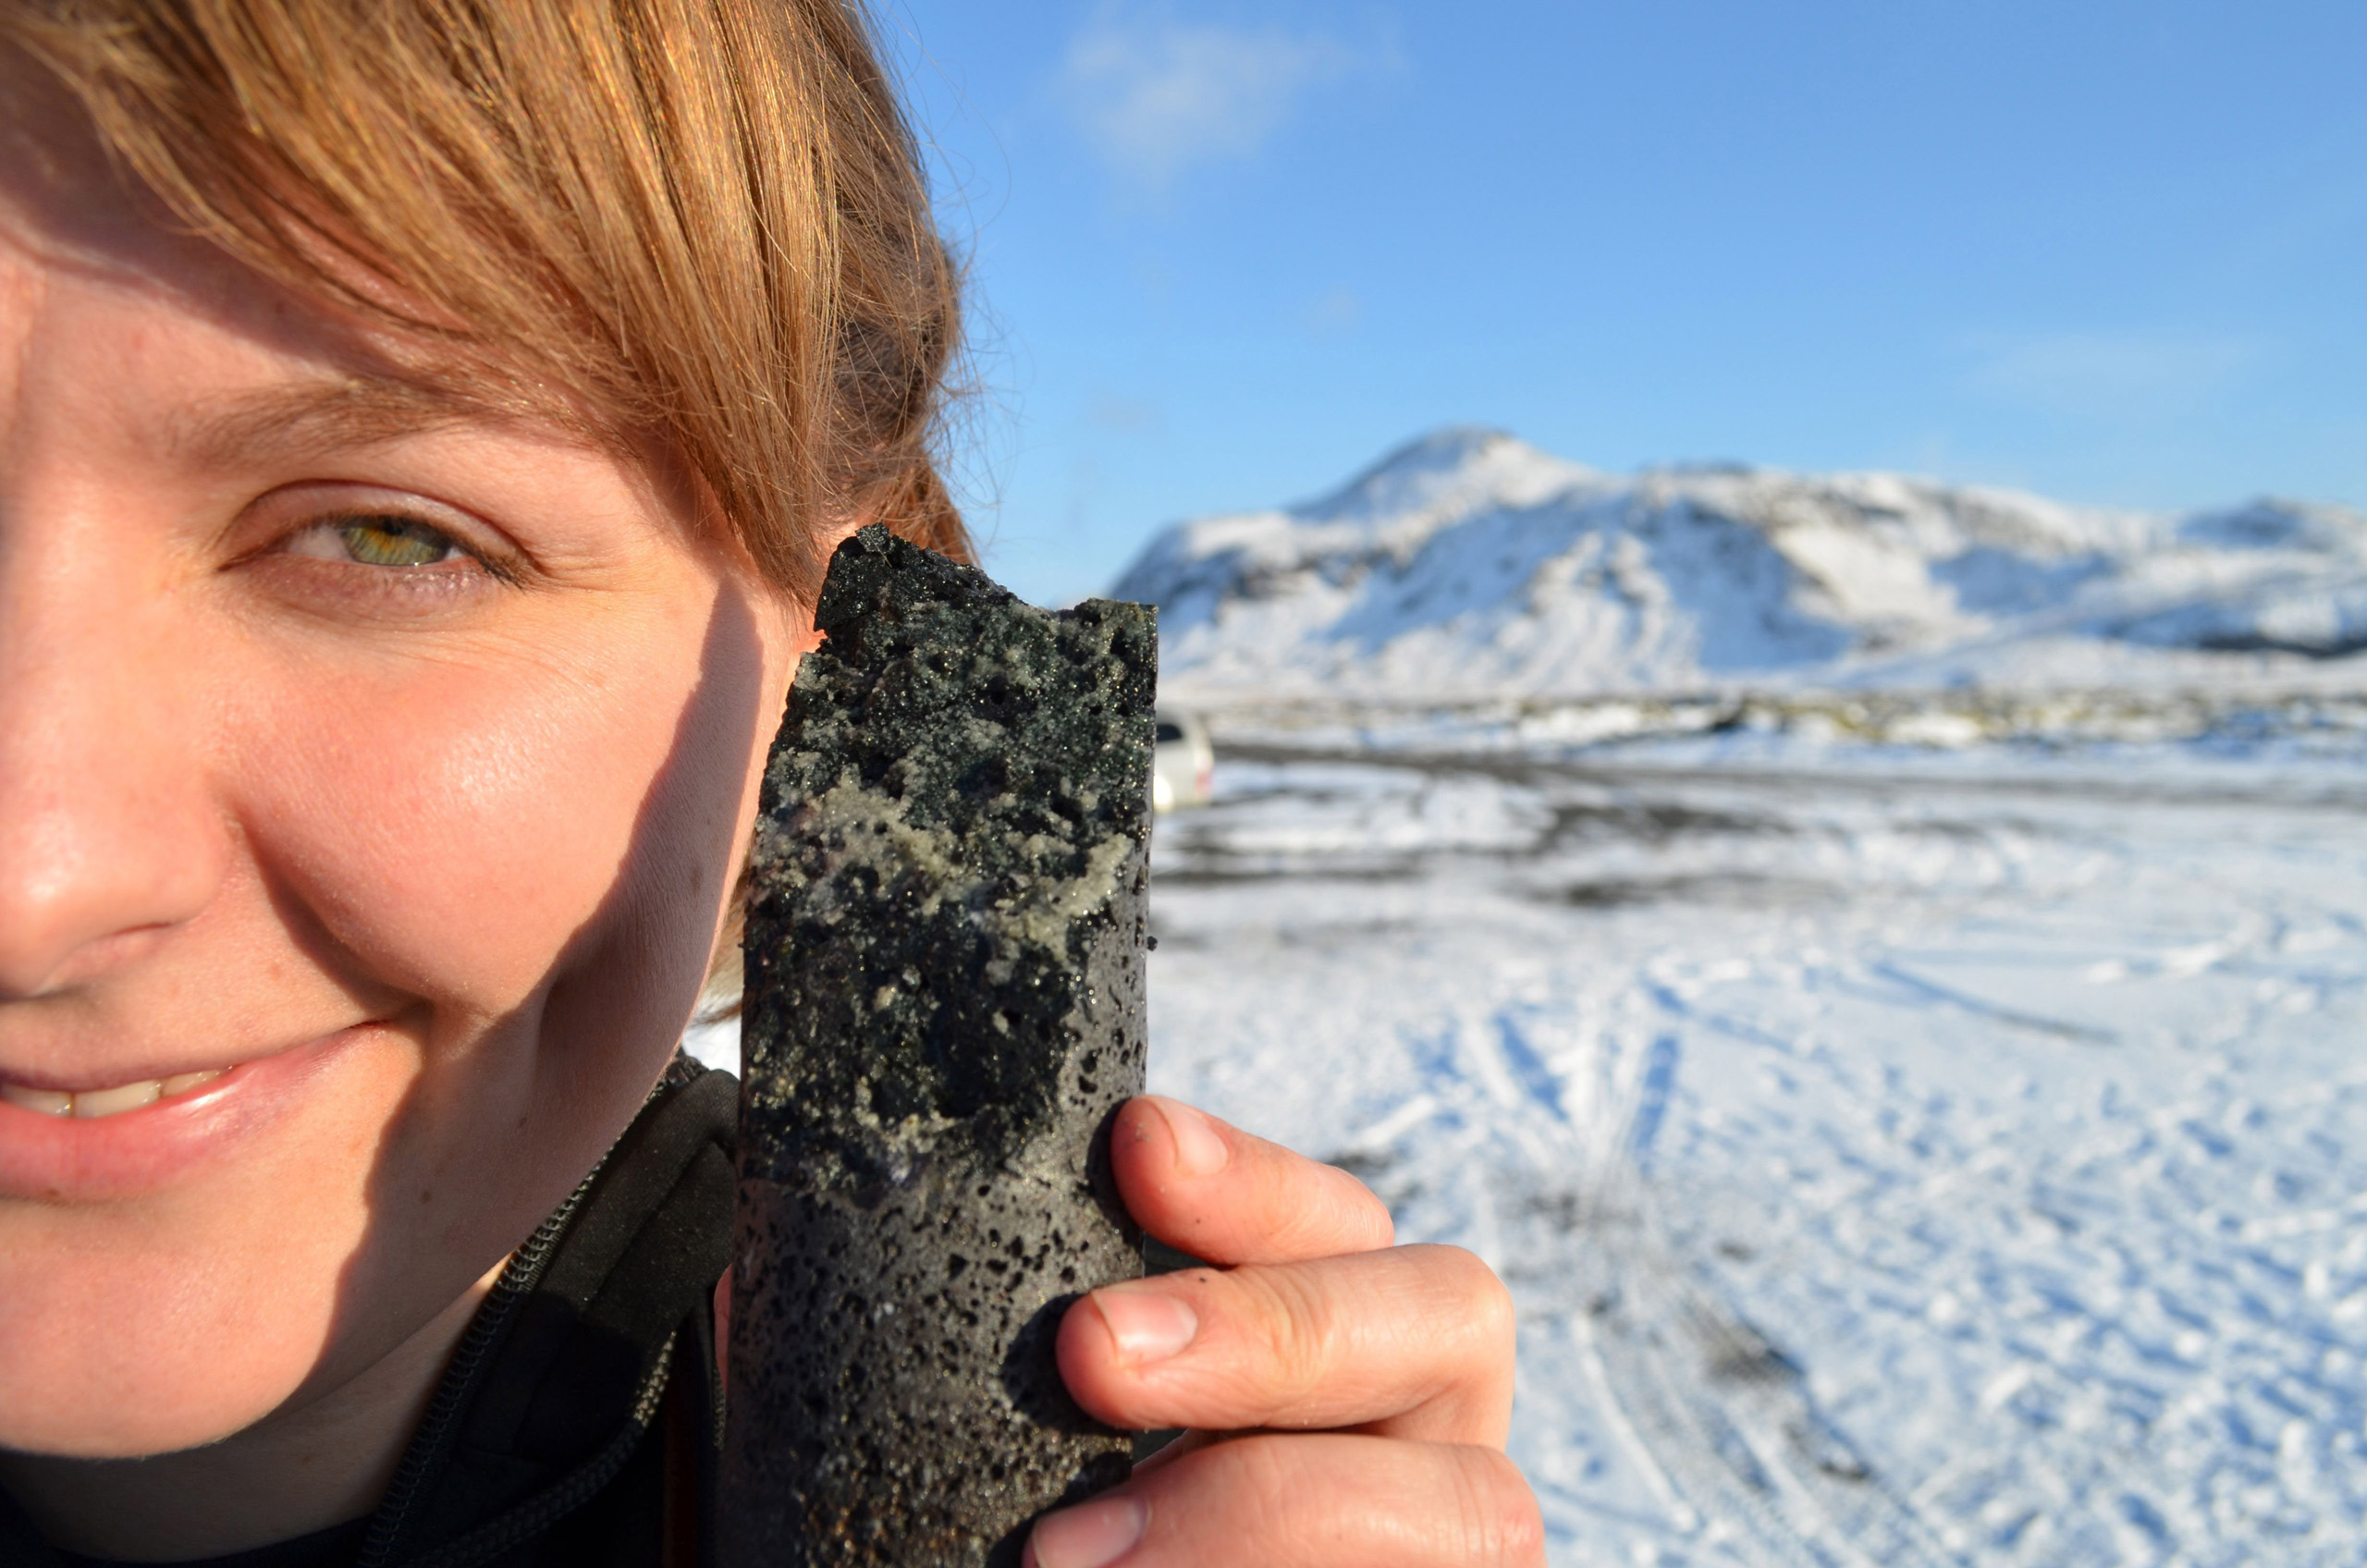 An experimental drill core held by coauthor Sandra Snaebjornsdottir in Iceland, laced with solidified carbonate, apparently produced by a new process that turns carbon emissions to stone when pumped underground.